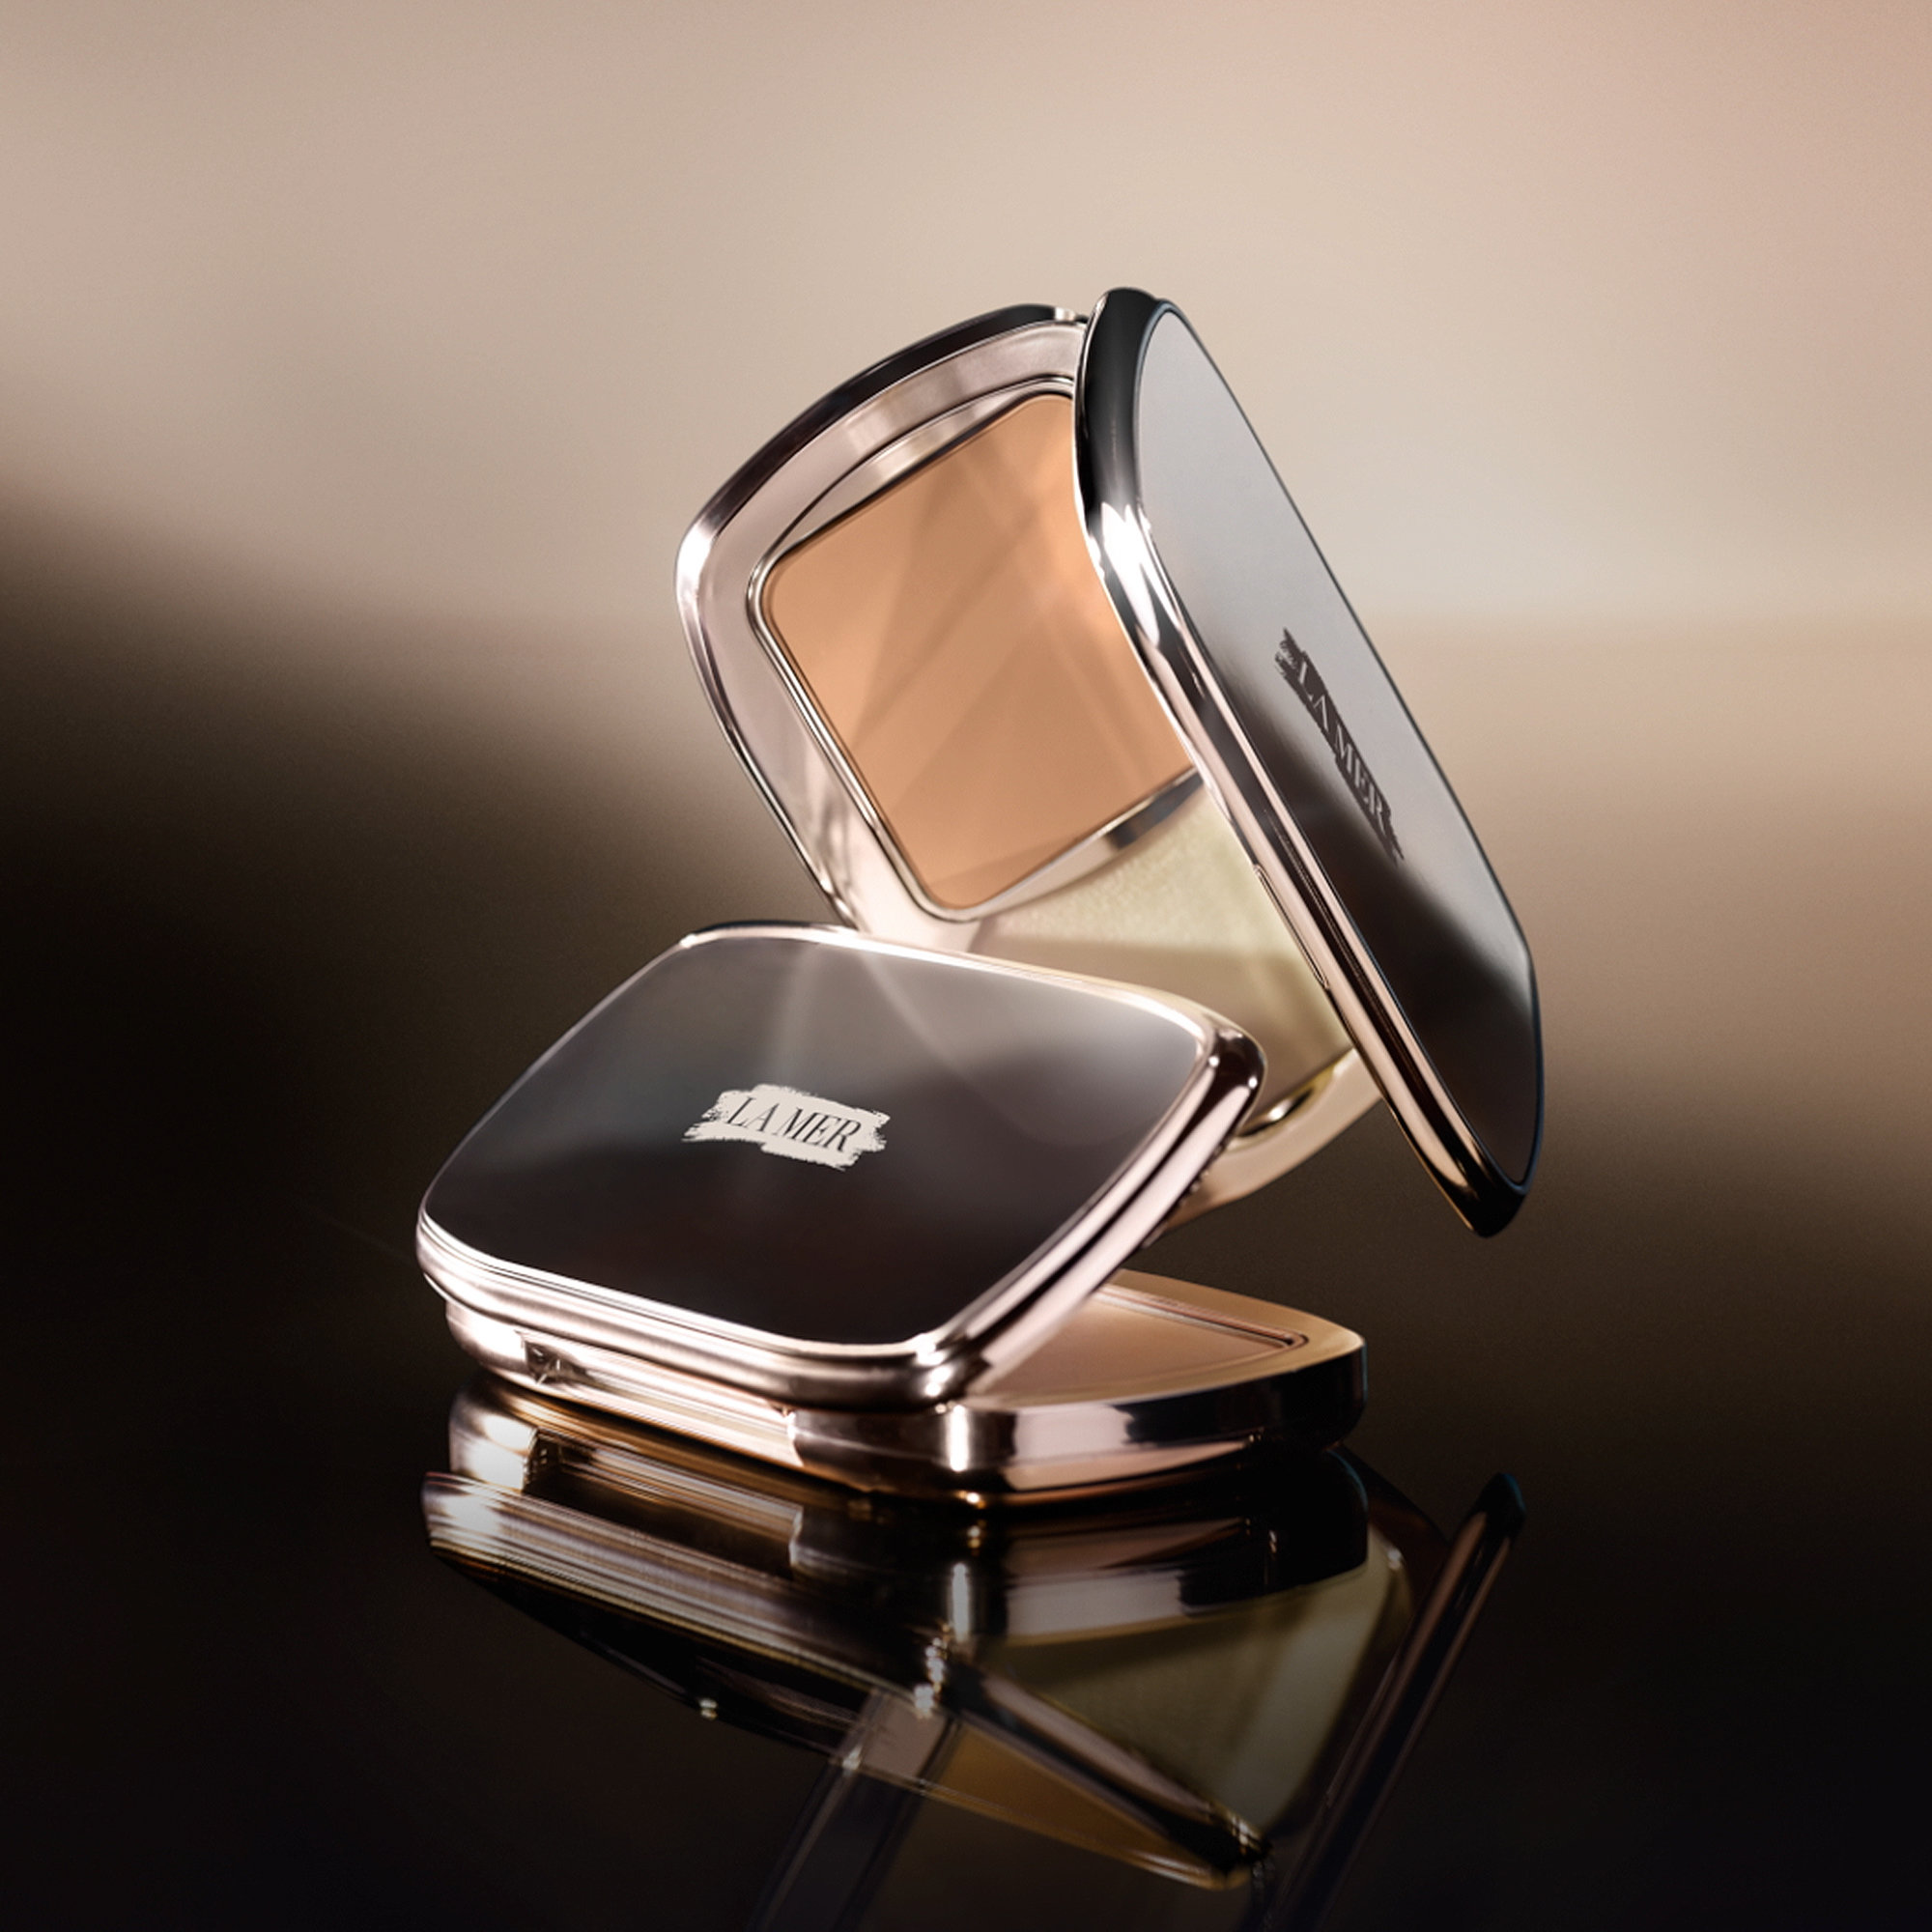 Alternate product image for The Soft Moisture Powder Foundation SPF 30 shown with the description.